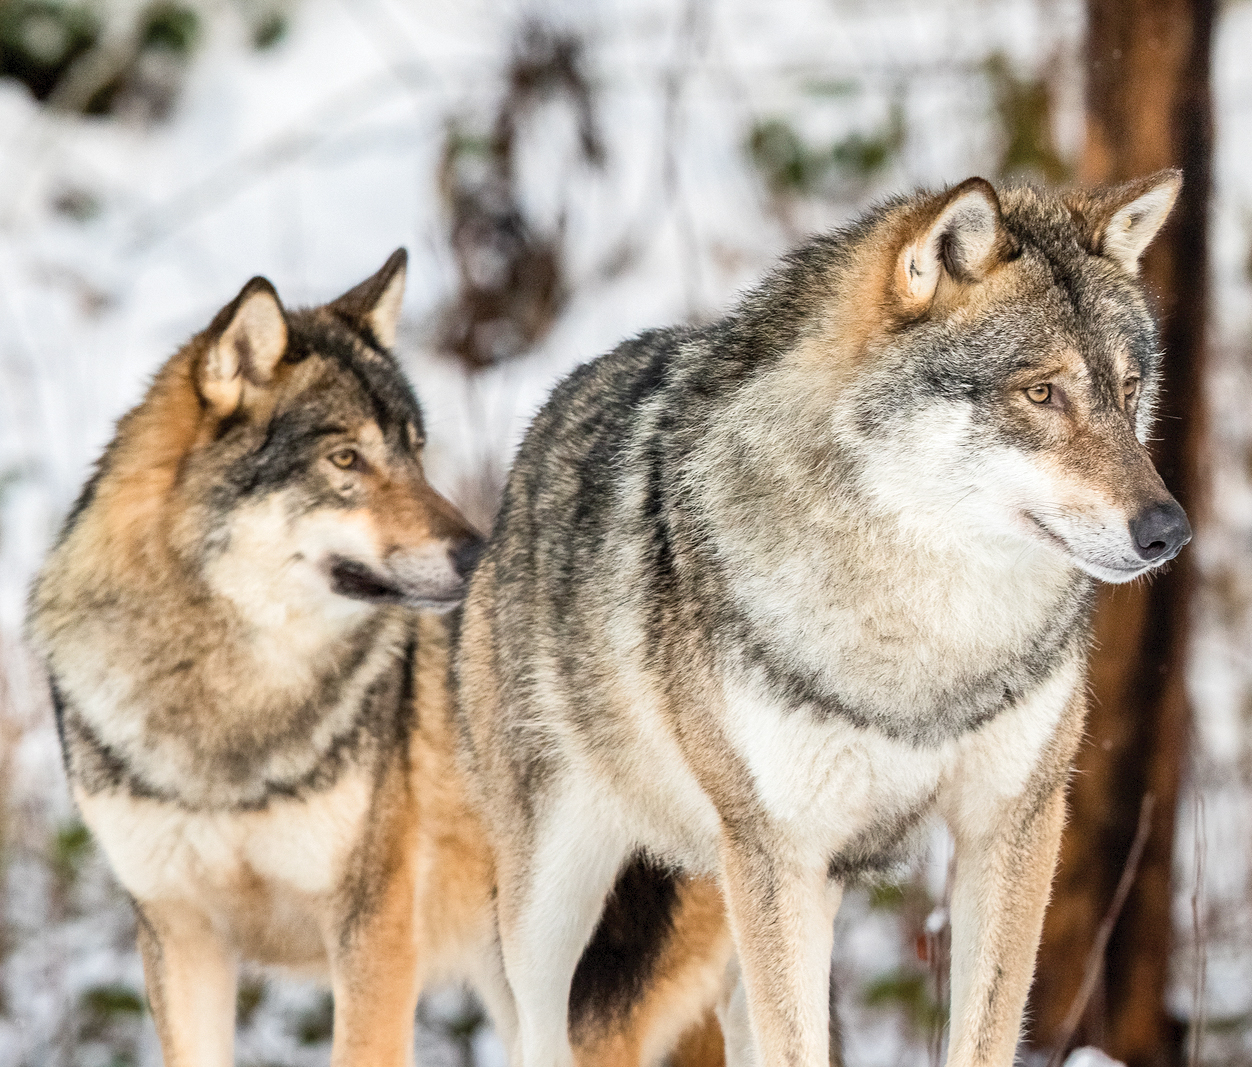 Judge upholds state protections for endangered gray wolves